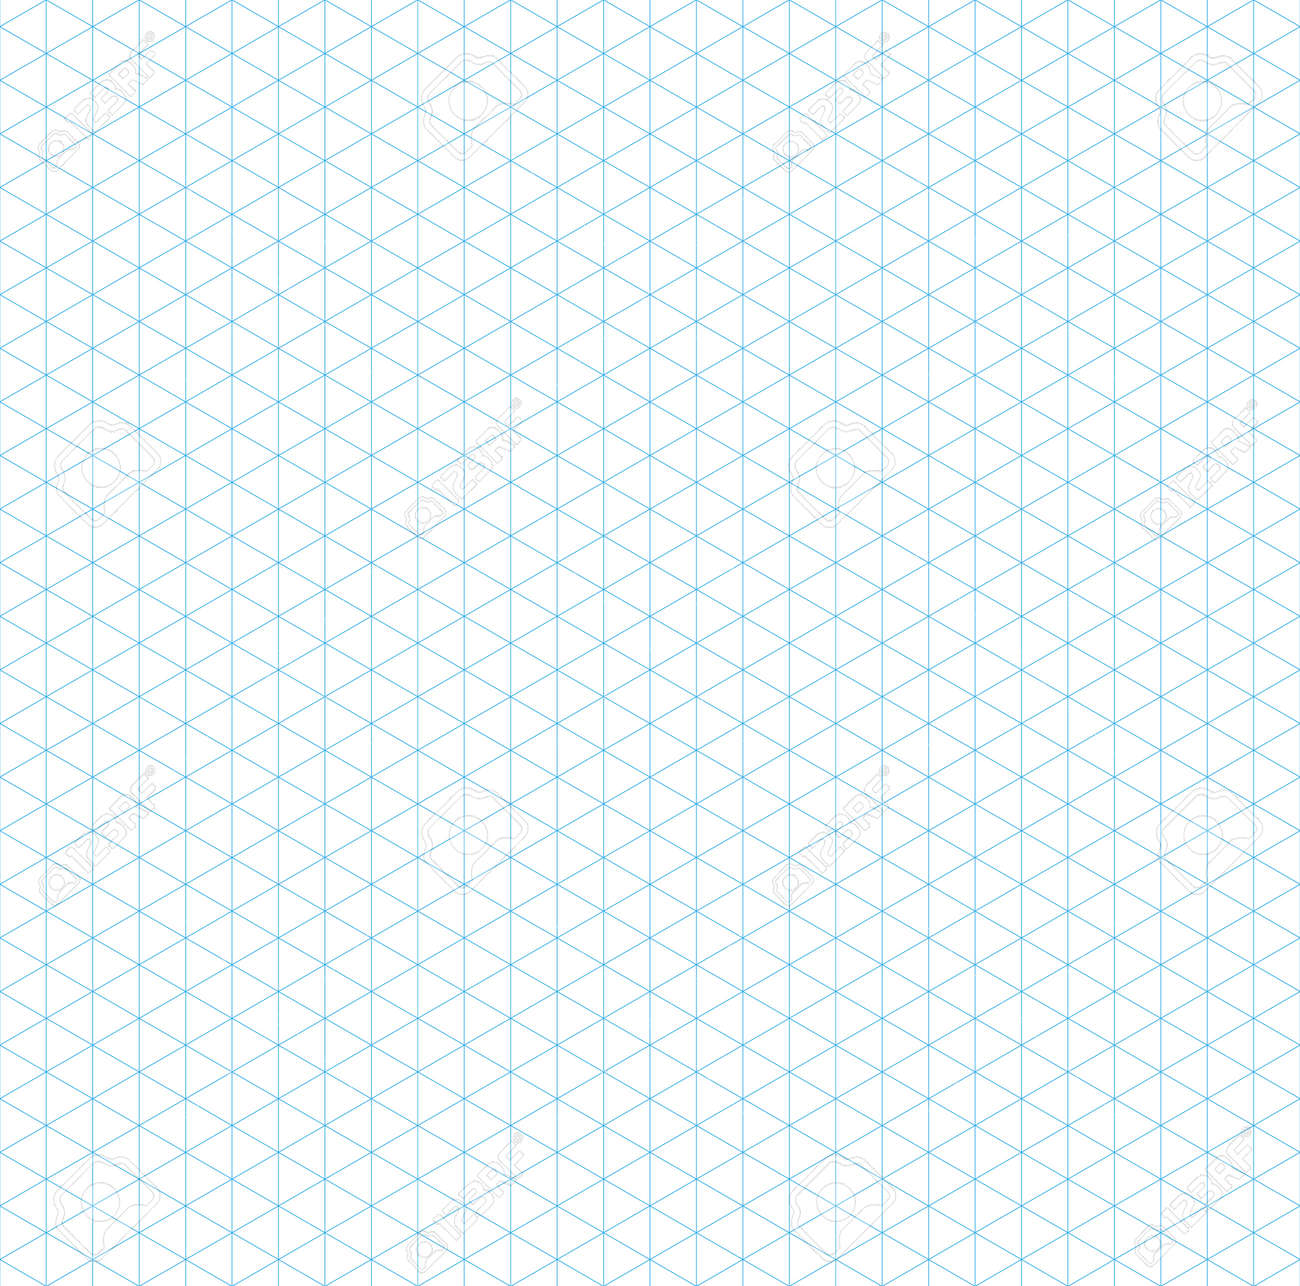 Empty isometric grid seamless pattern royalty free cliparts empty isometric grid seamless pattern stock vector 48130582 malvernweather Images